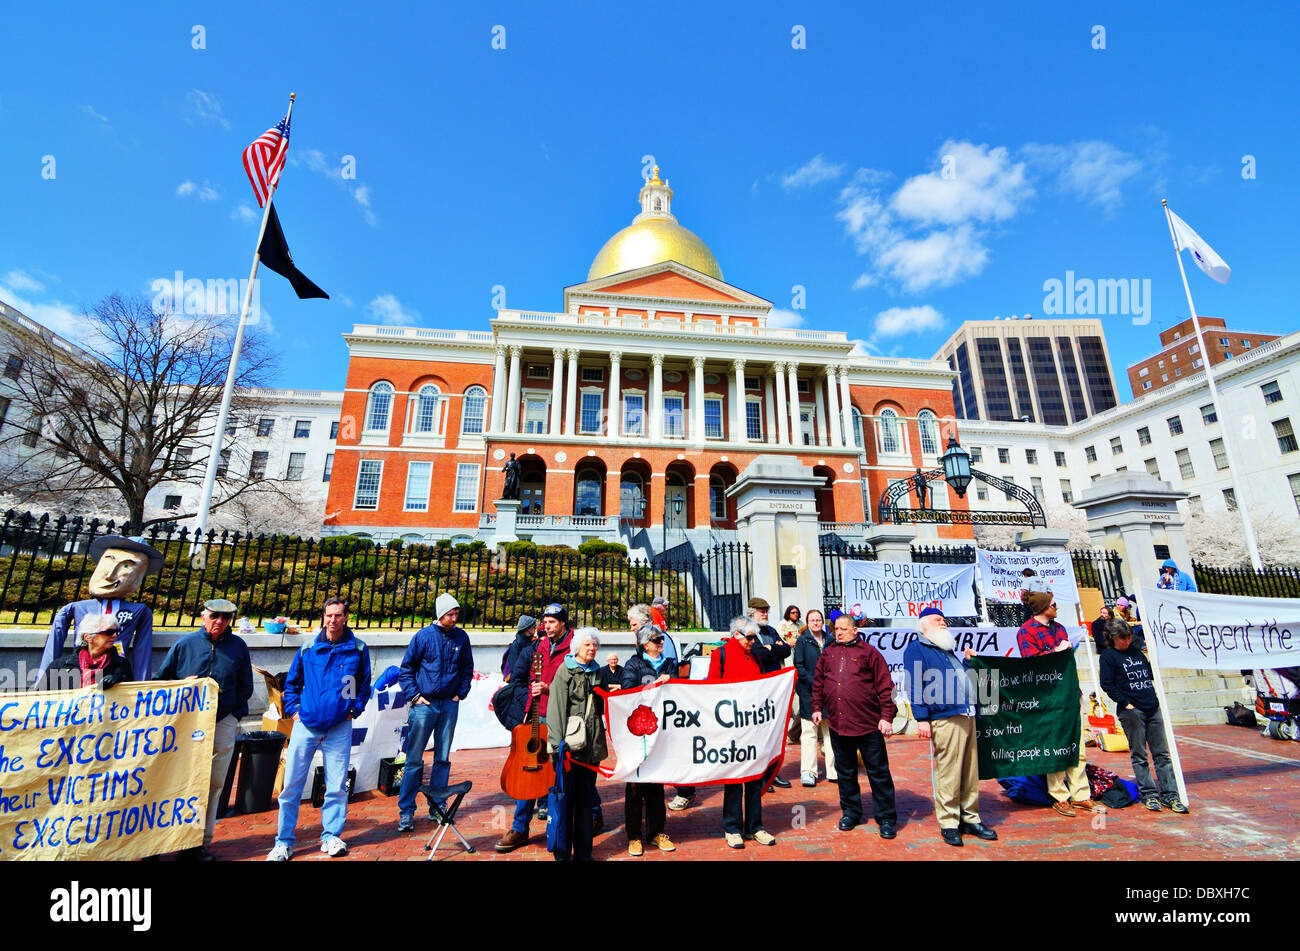 BOSTON - APRIL 6: Protestors at Massachusetts State House April 6, 2012 in Boston, MA. The building was completed - Stock Image